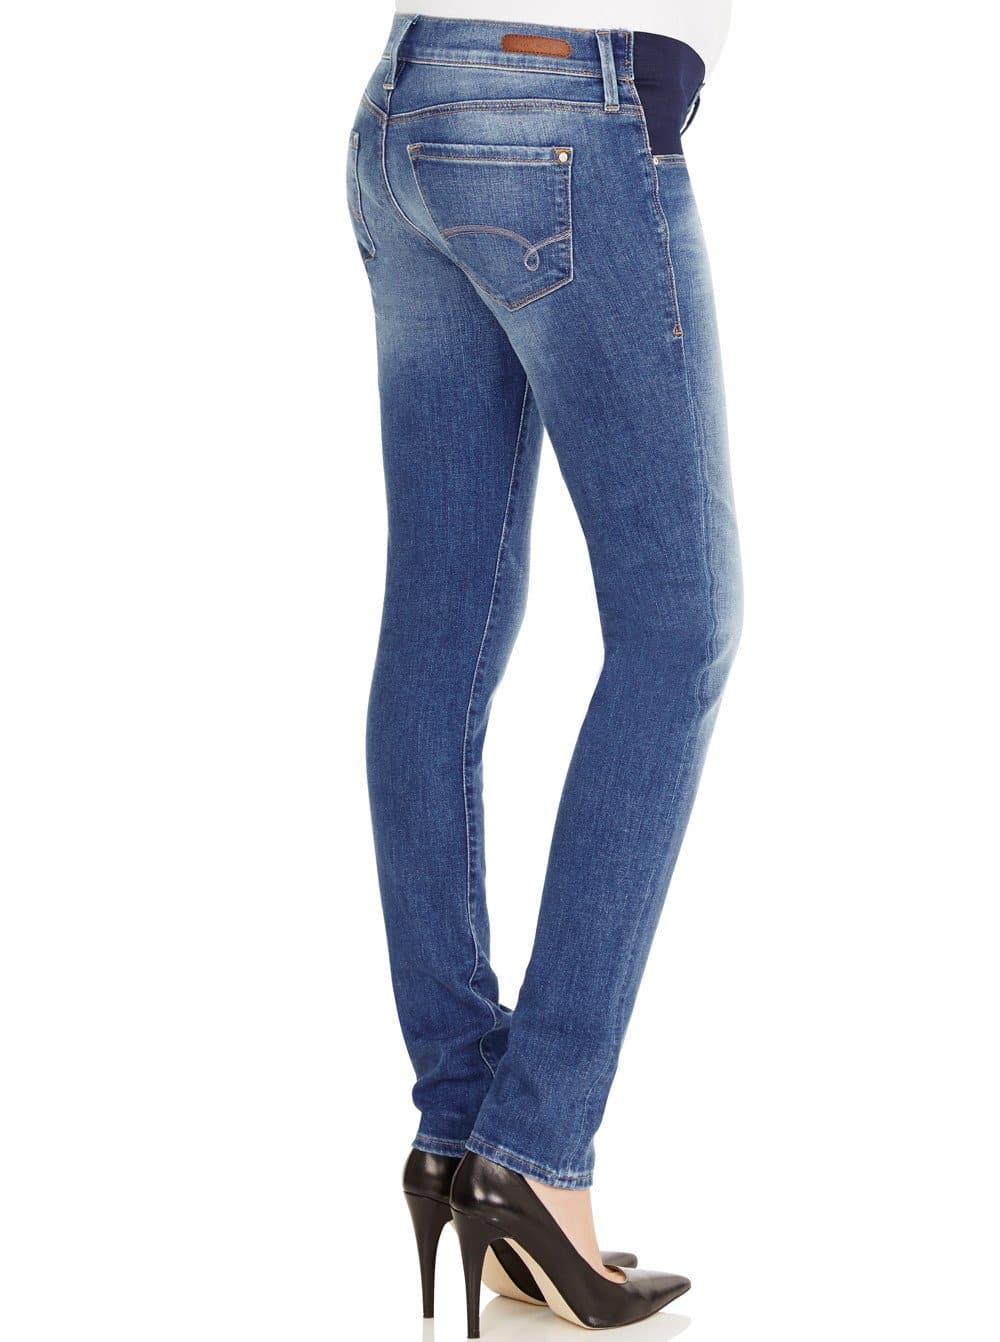 Jessica - MAVI Nolita Stretch Slim Maternity Jeans - Blue - Angel Maternity - Maternity clothes - shop online